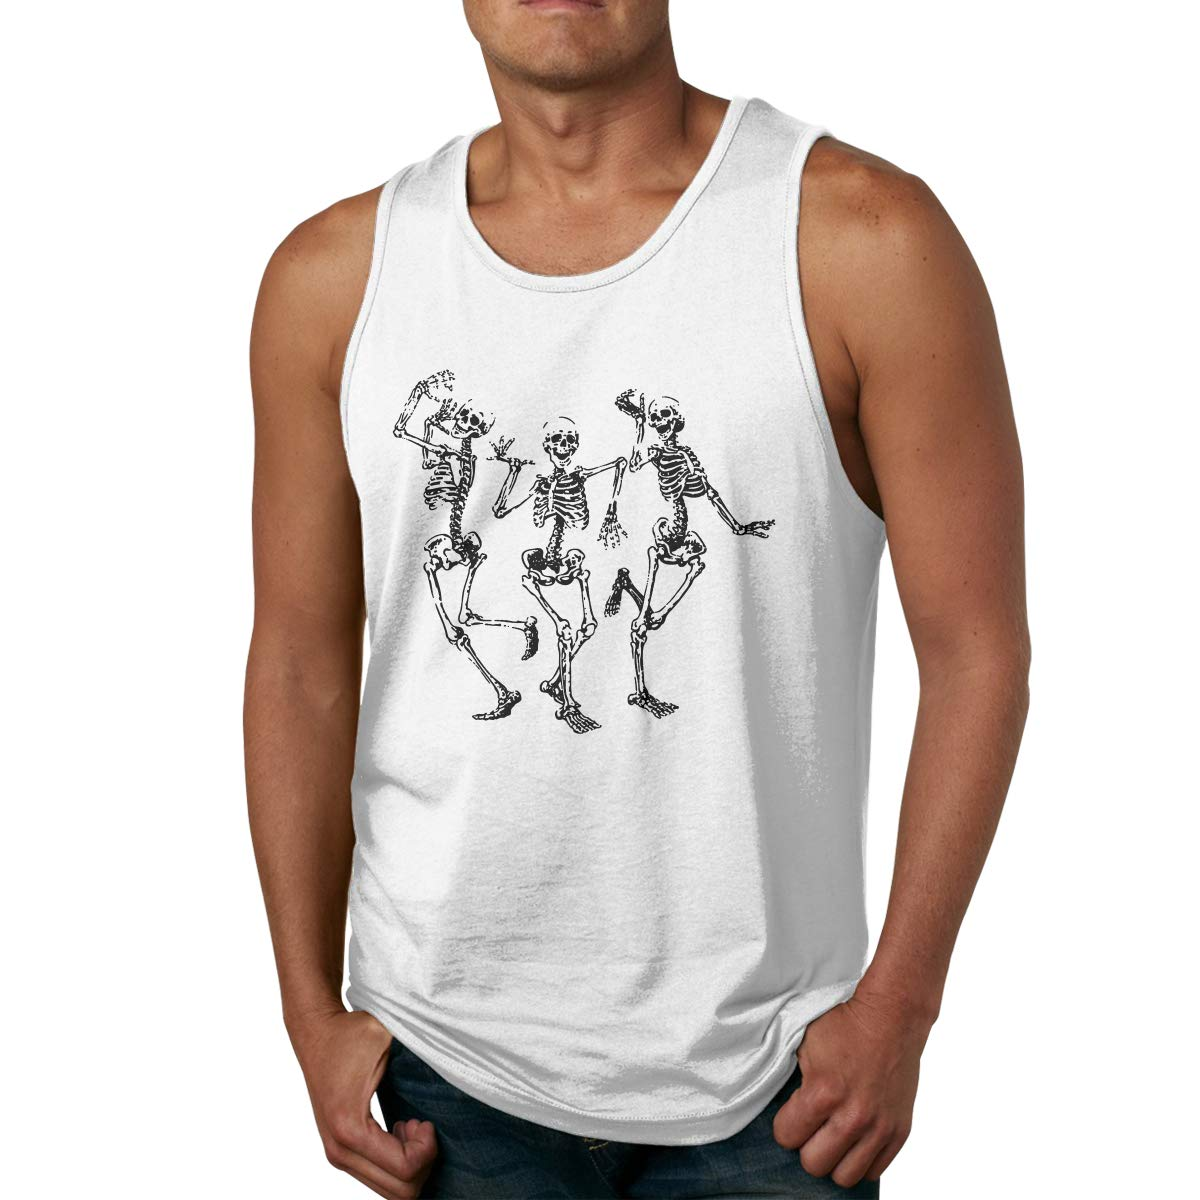 LLXM Halloween Skull Men Printed Vest Sports Tank-Top Tees Leisure T-Shirt Sleeveless Shirts